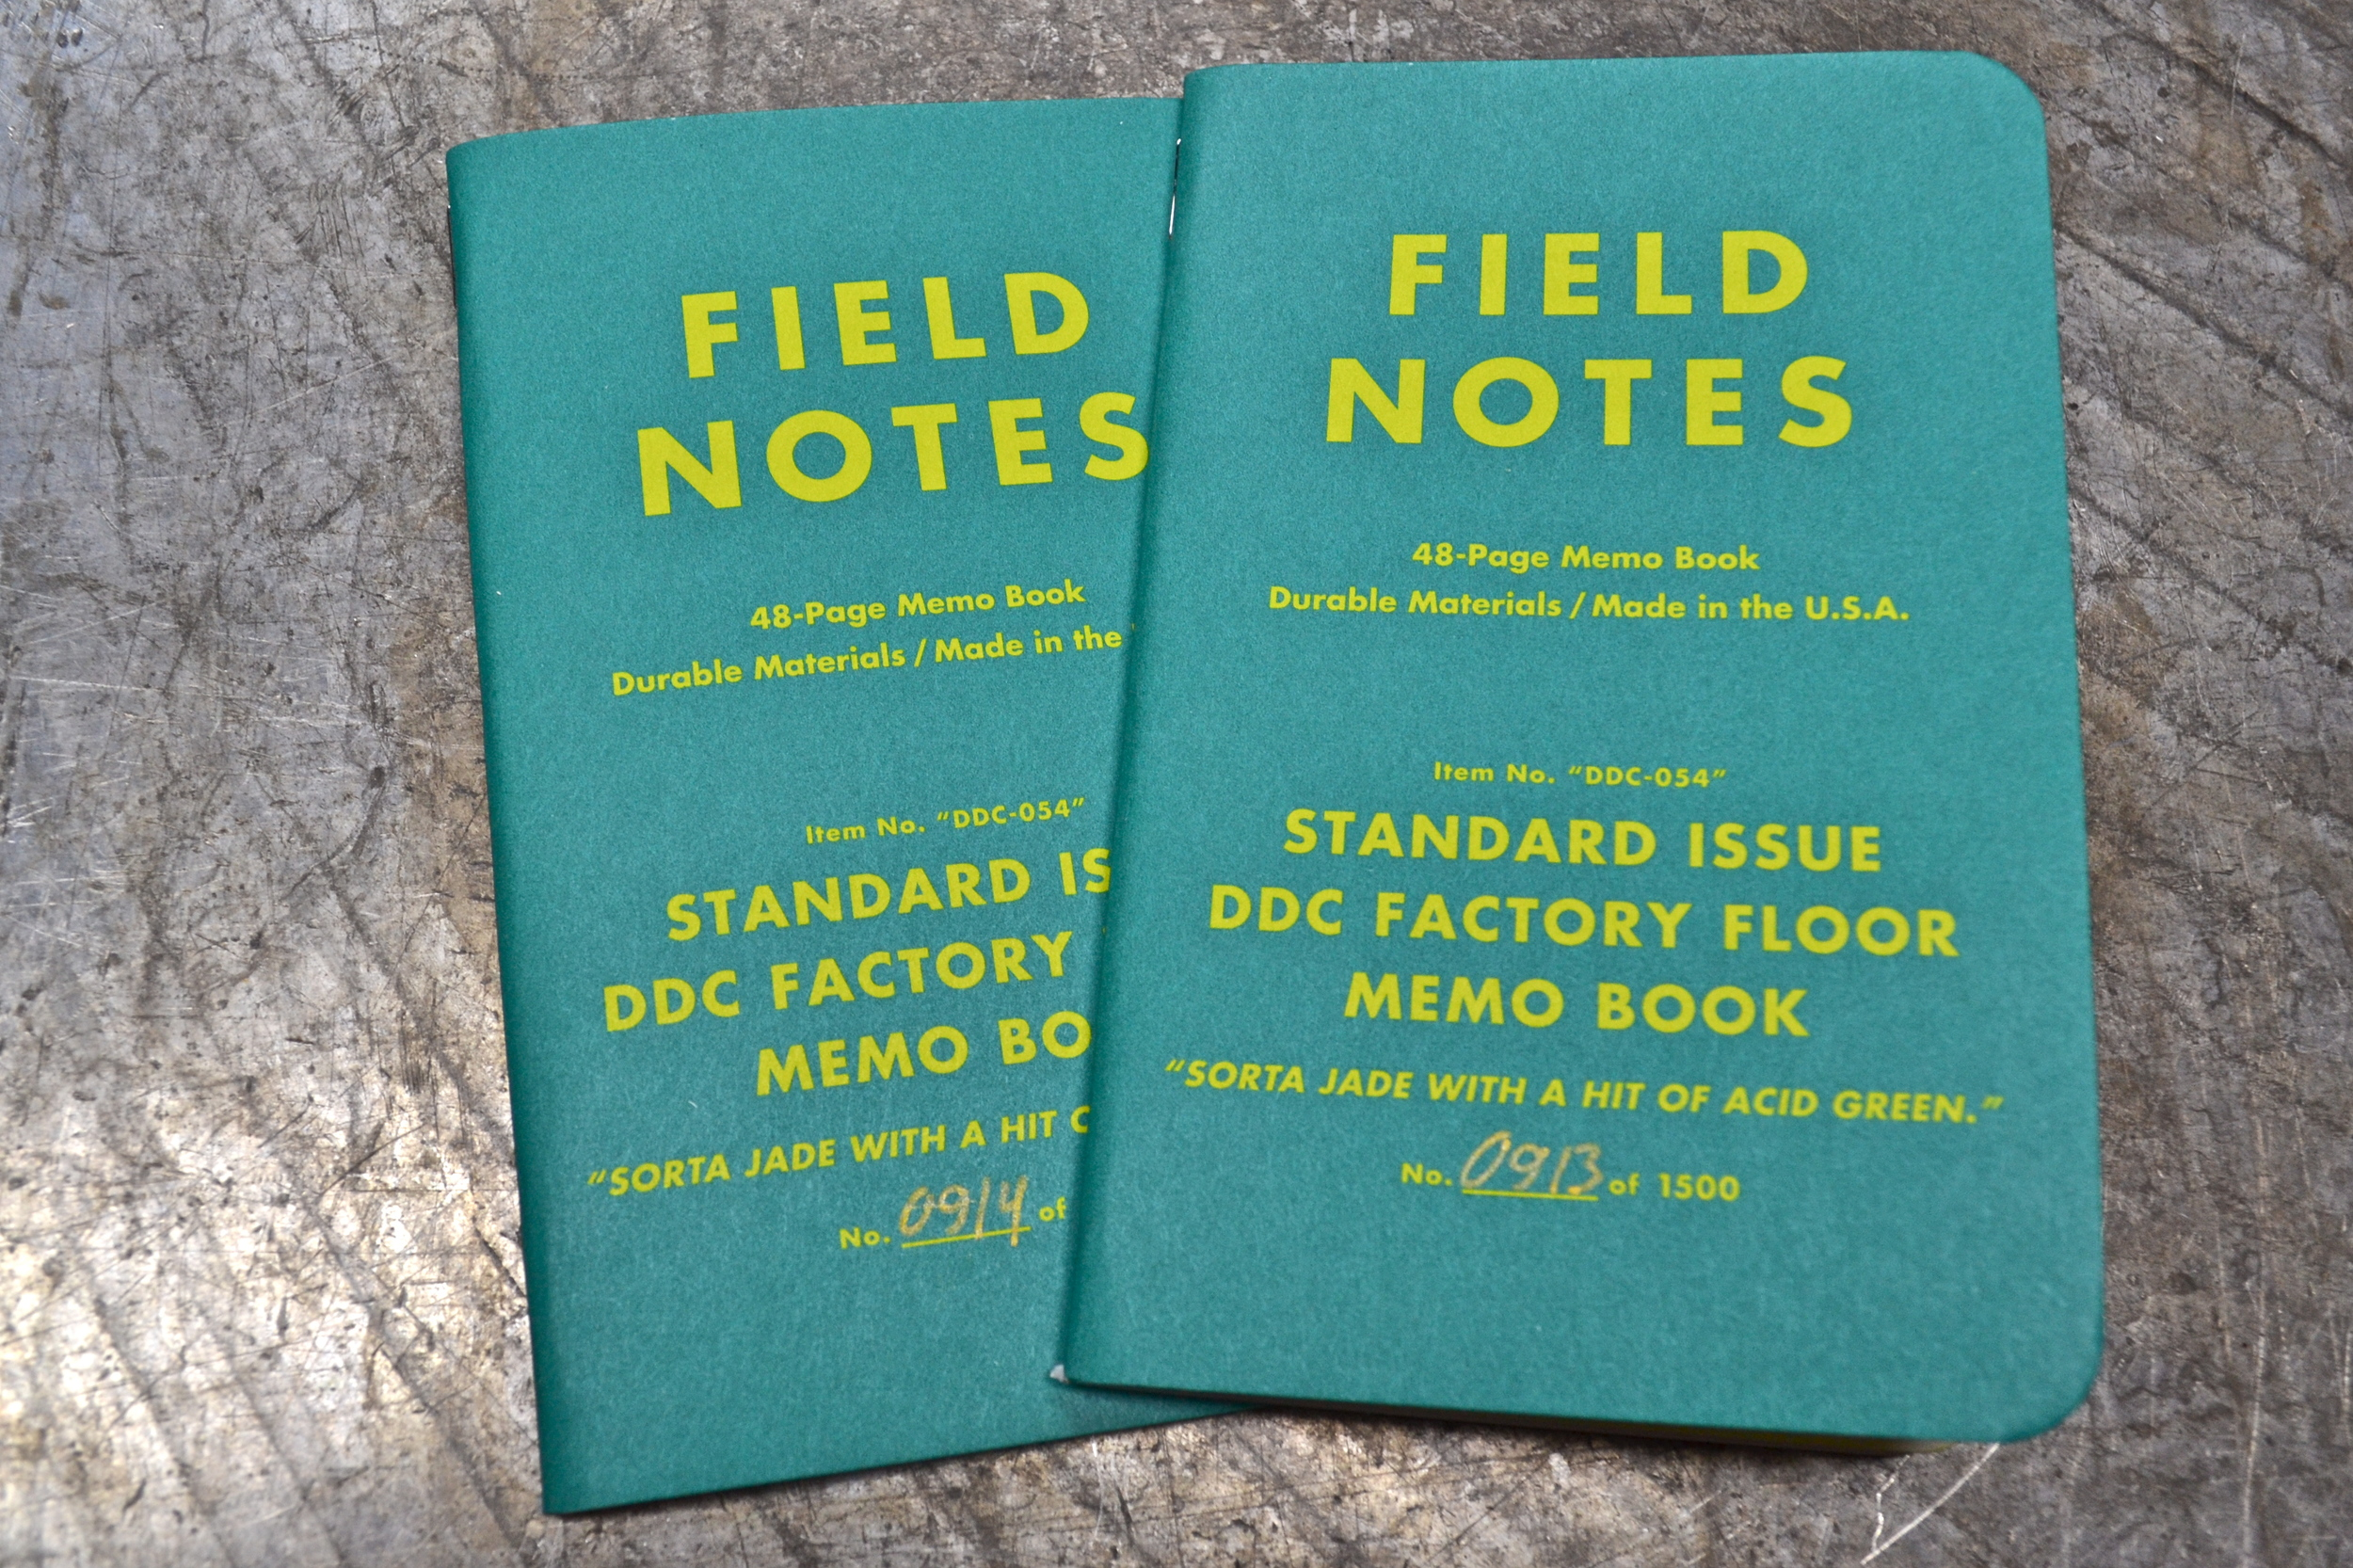 This is a giveaway of the DDC factory floor field notes